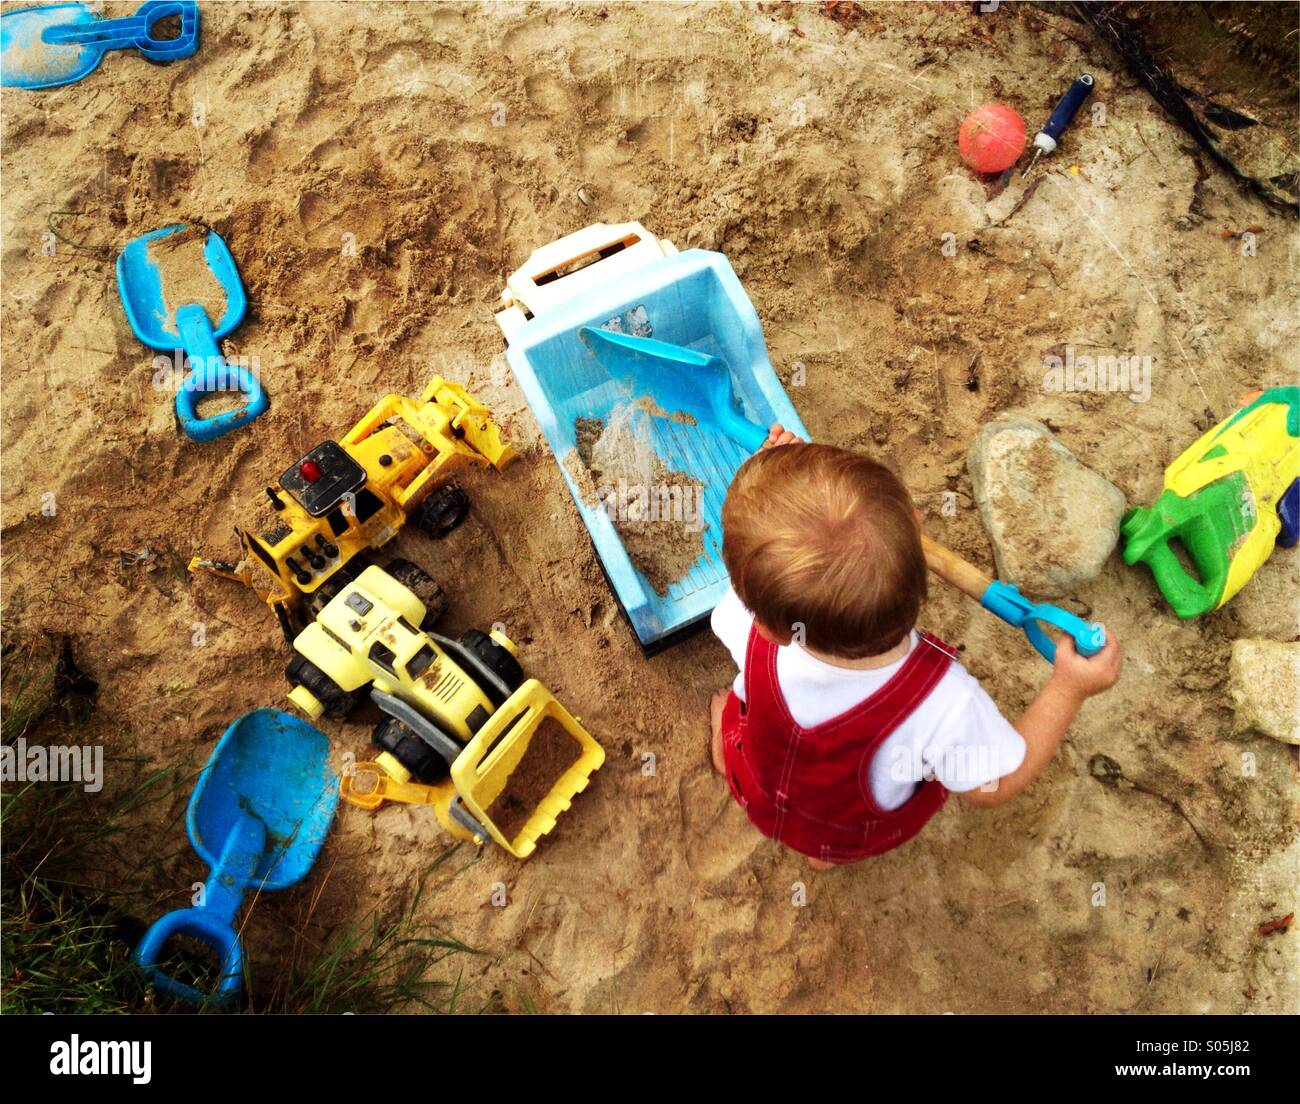 Toddler boy plays with a shovel and trucks in a large sandbox. - Stock Image